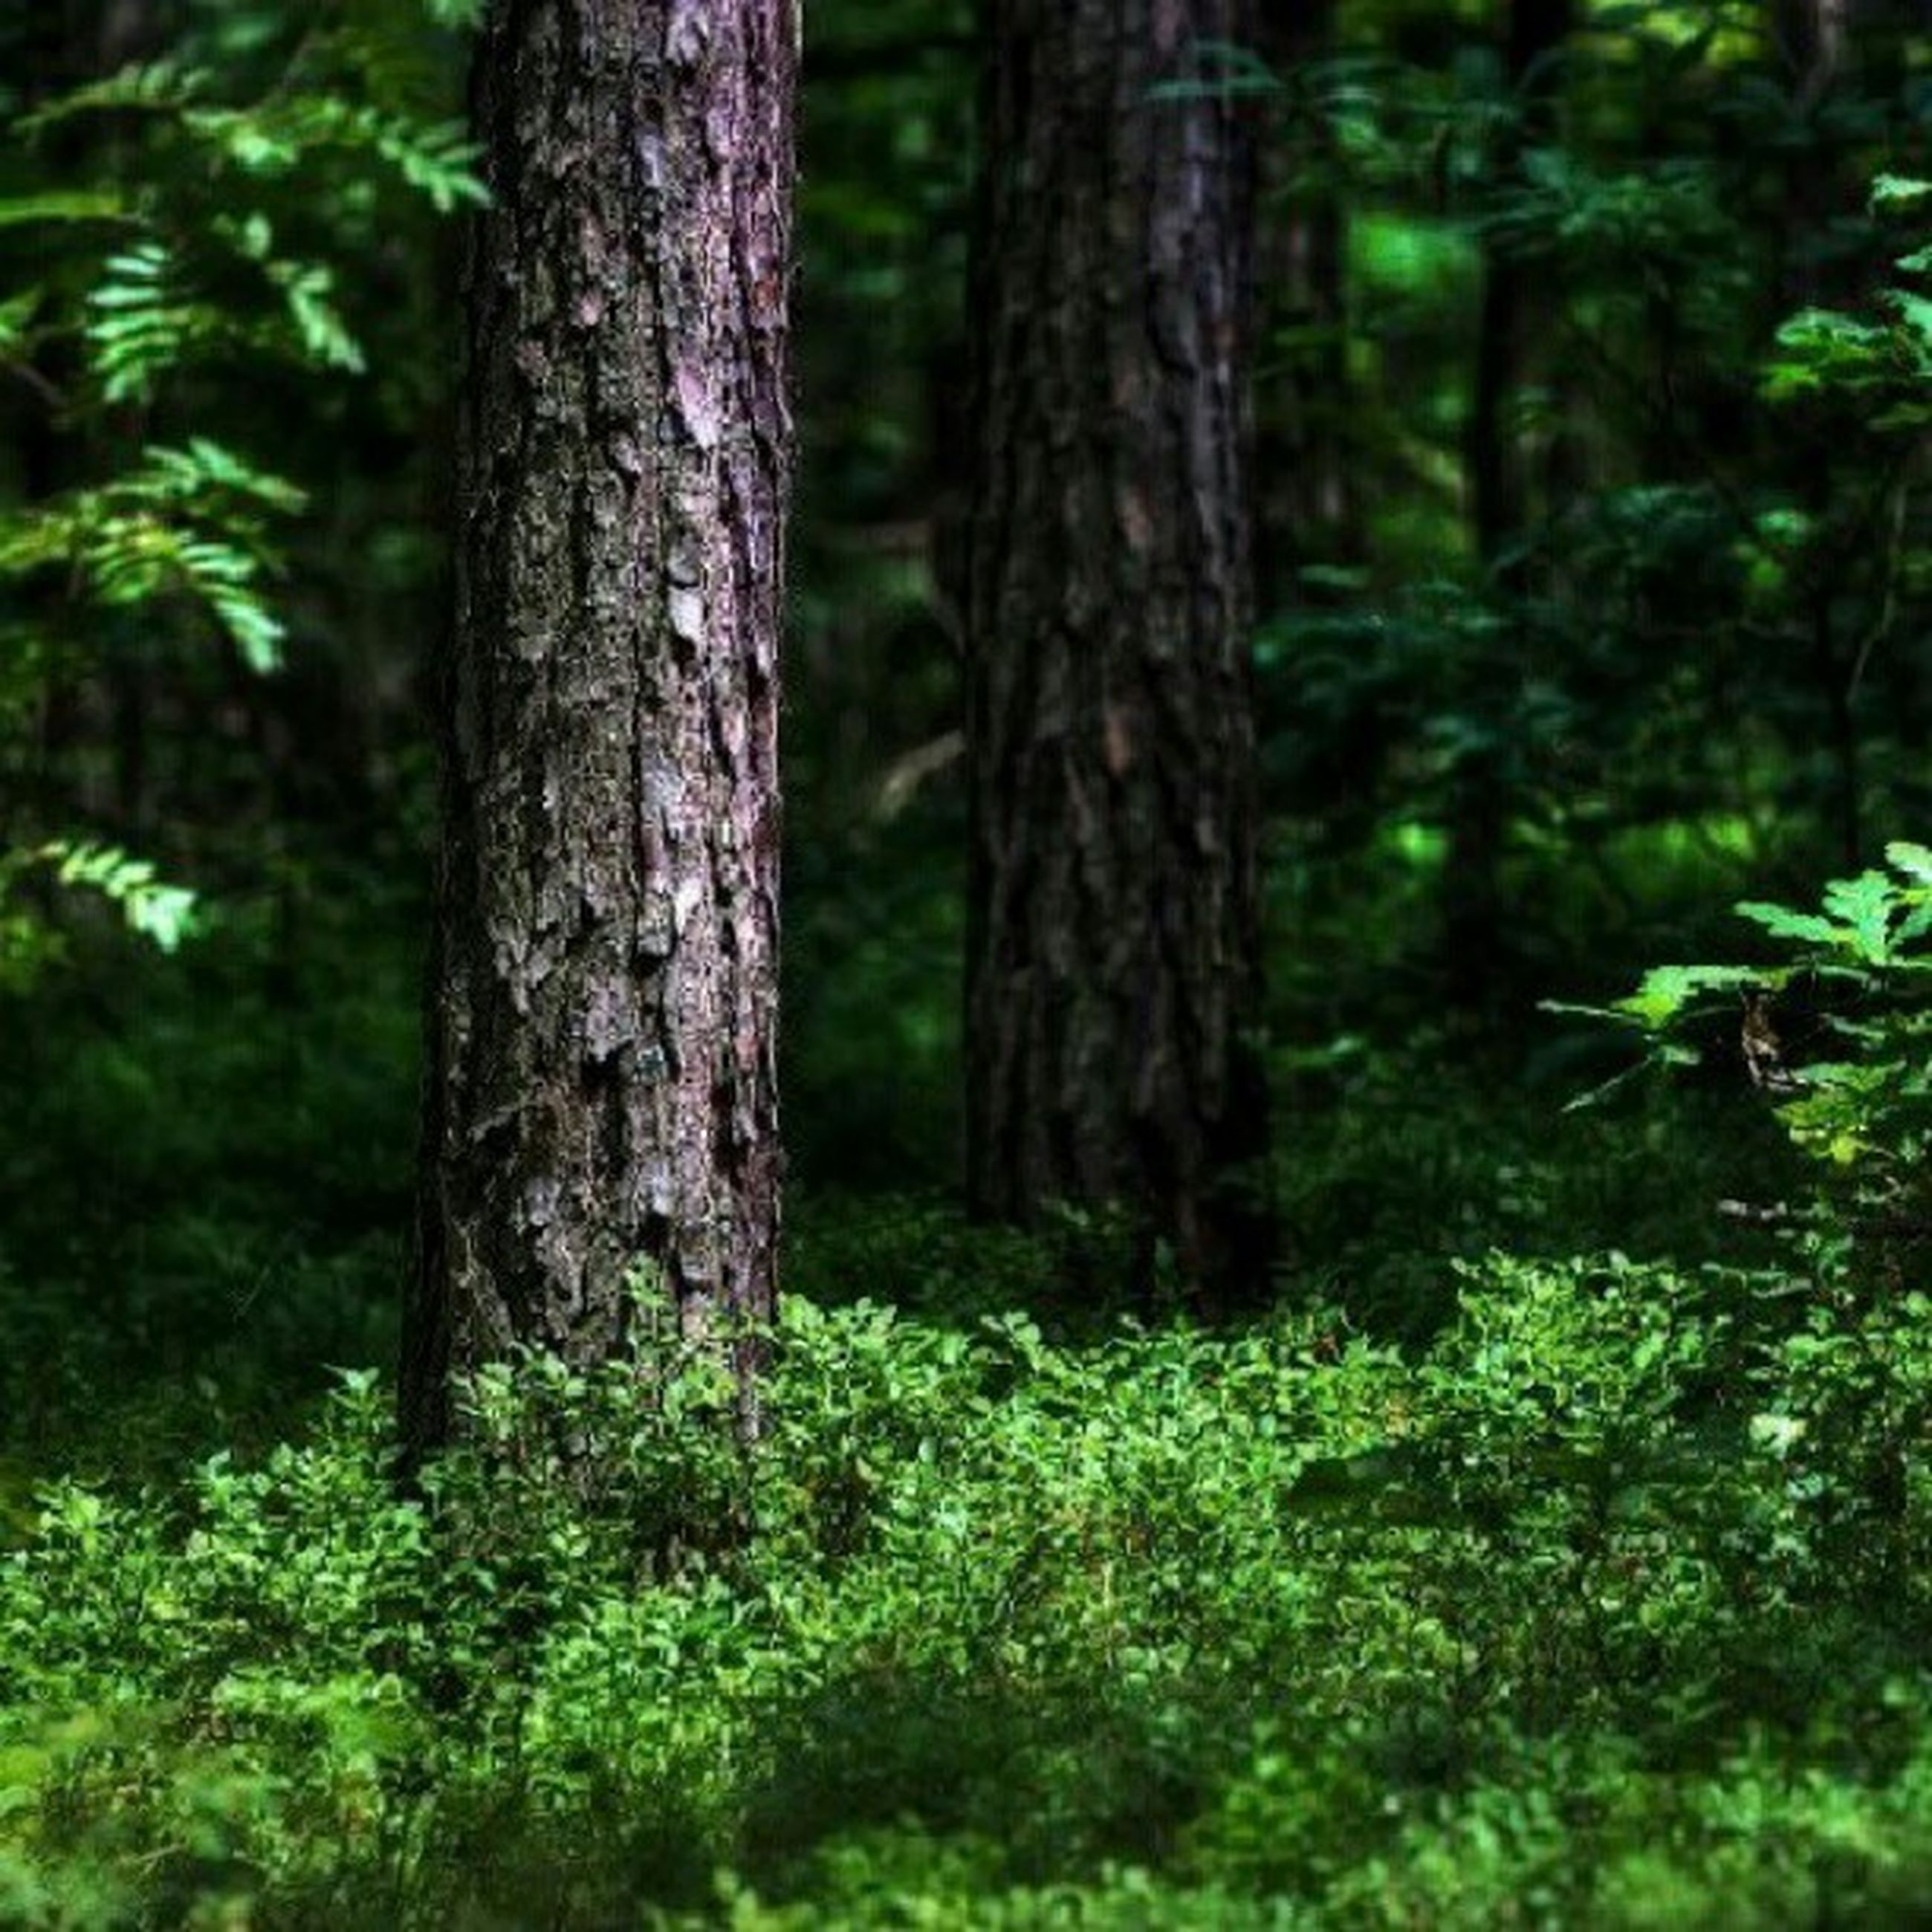 tree, forest, tree trunk, growth, woodland, tranquility, nature, green color, beauty in nature, tranquil scene, branch, woods, non-urban scene, outdoors, day, plant, no people, scenics, lush foliage, growing